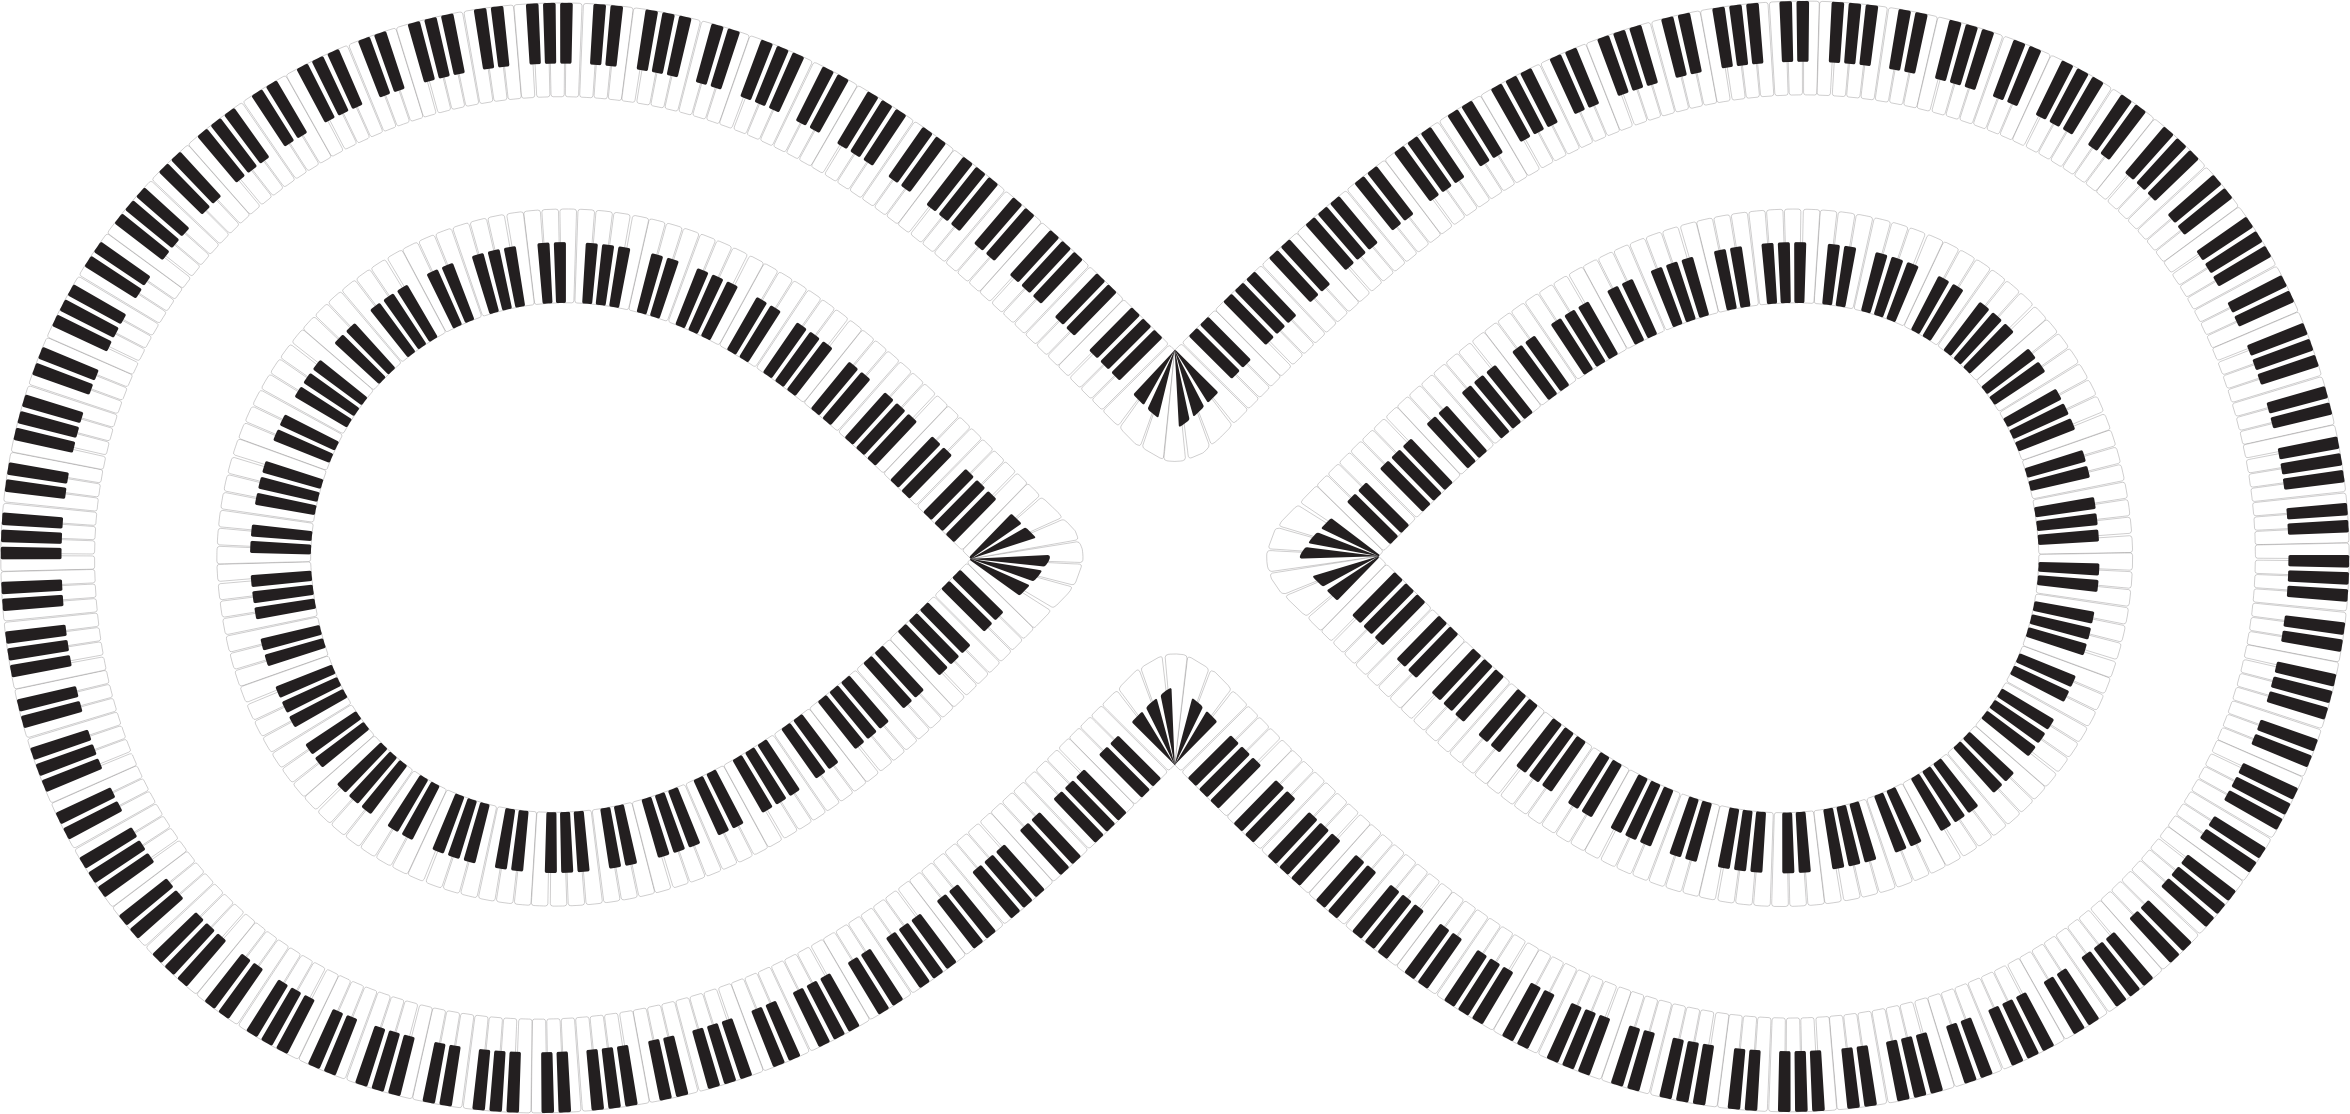 Infinite Piano Keys by GDJ